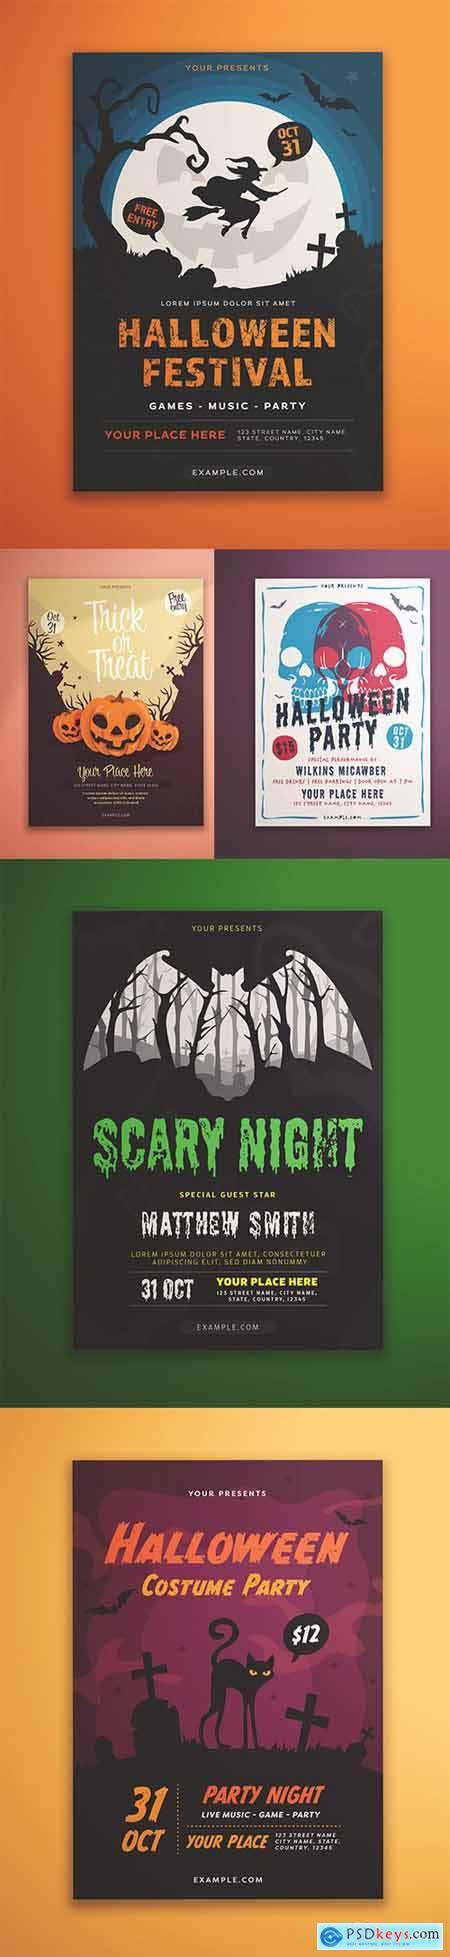 Set of 5 Halloween Flyer Layout with Illustrative Elements